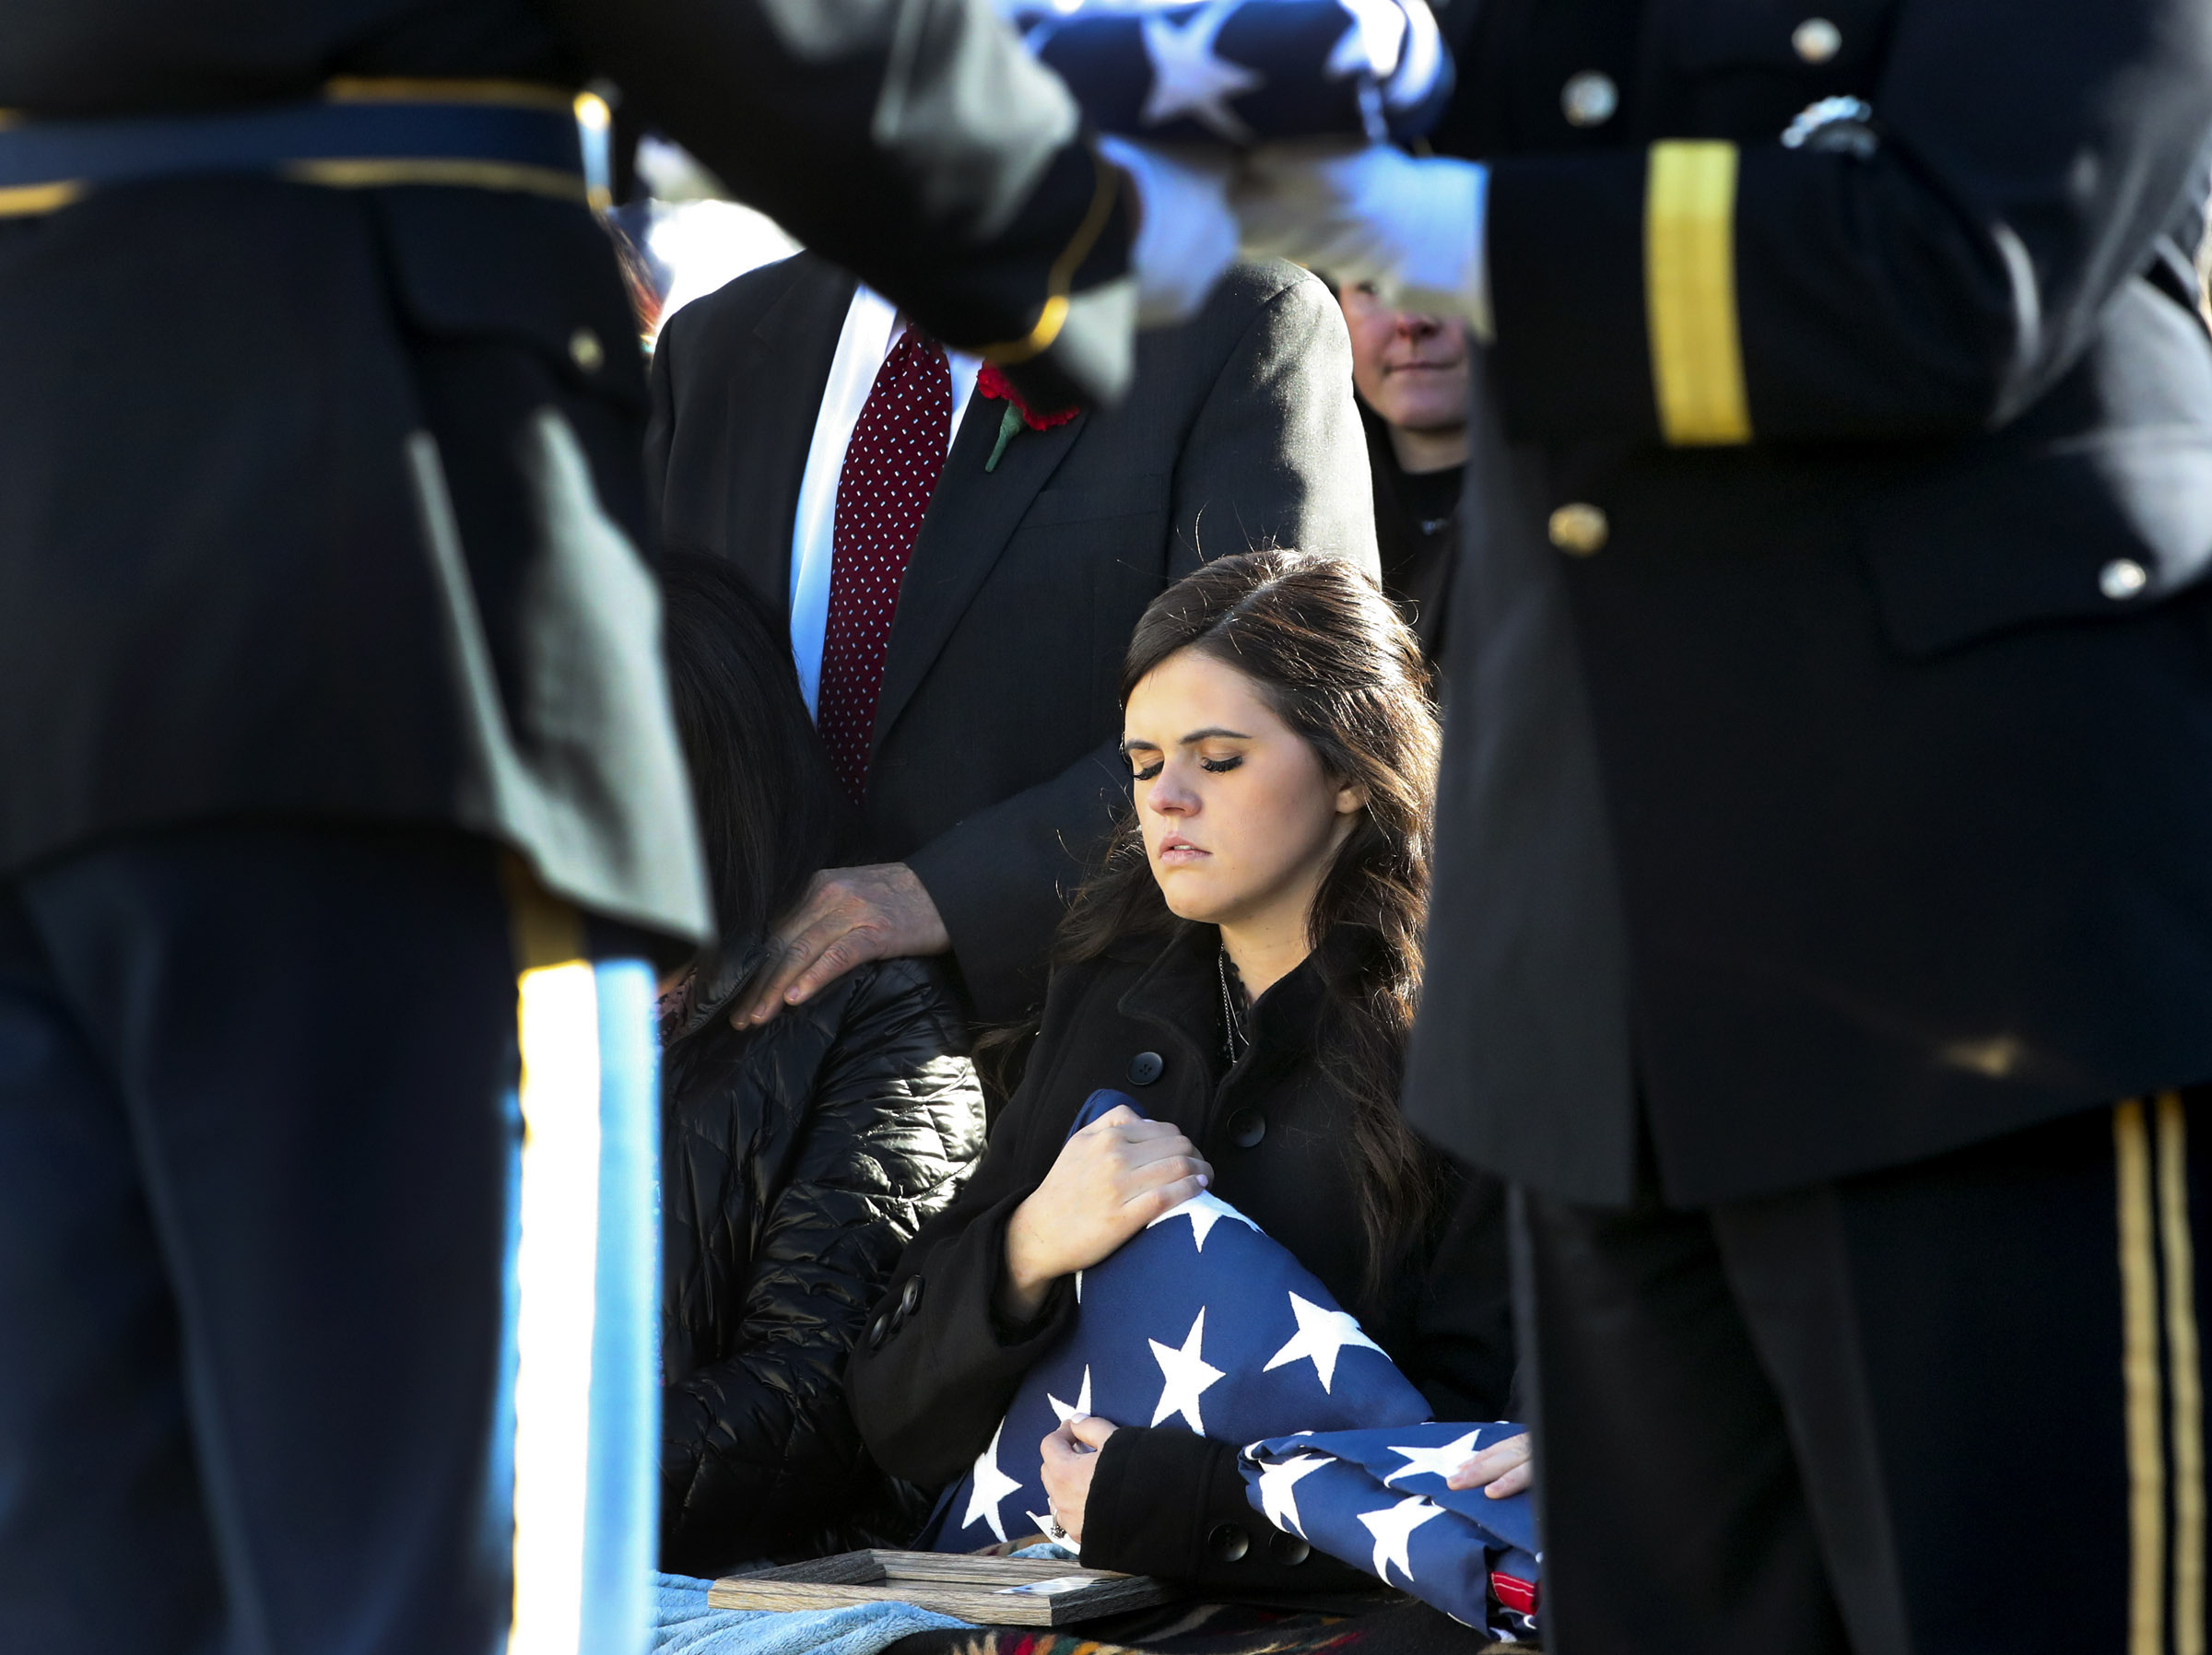 McKenzie Norman Fuchigami, wife of Chief Warrant Officer 2 Kirk T. Fuchigami Jr., holds the American flag that was draped over her husband's casket during graveside services at the Brigham City Cemetery on Monday, Dec. 9, 2019. Fuchigami and his co-pilot died when their helicopter crashed as they provided security for troops on the ground in Logar Province in eastern Afghanistan.